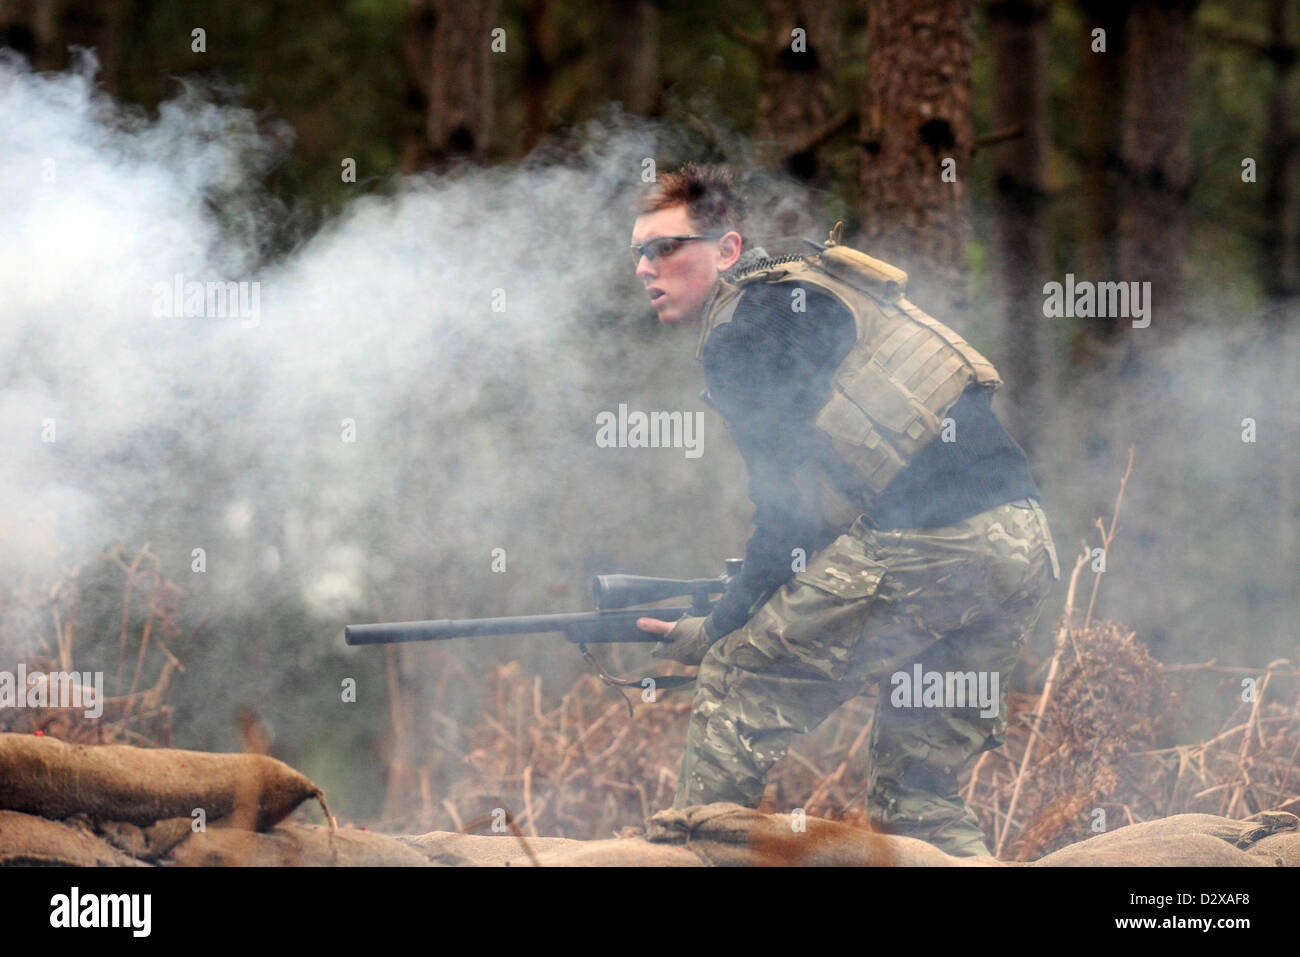 Airsoft sniper, participant in action during an airsoft game, UK - Stock Image